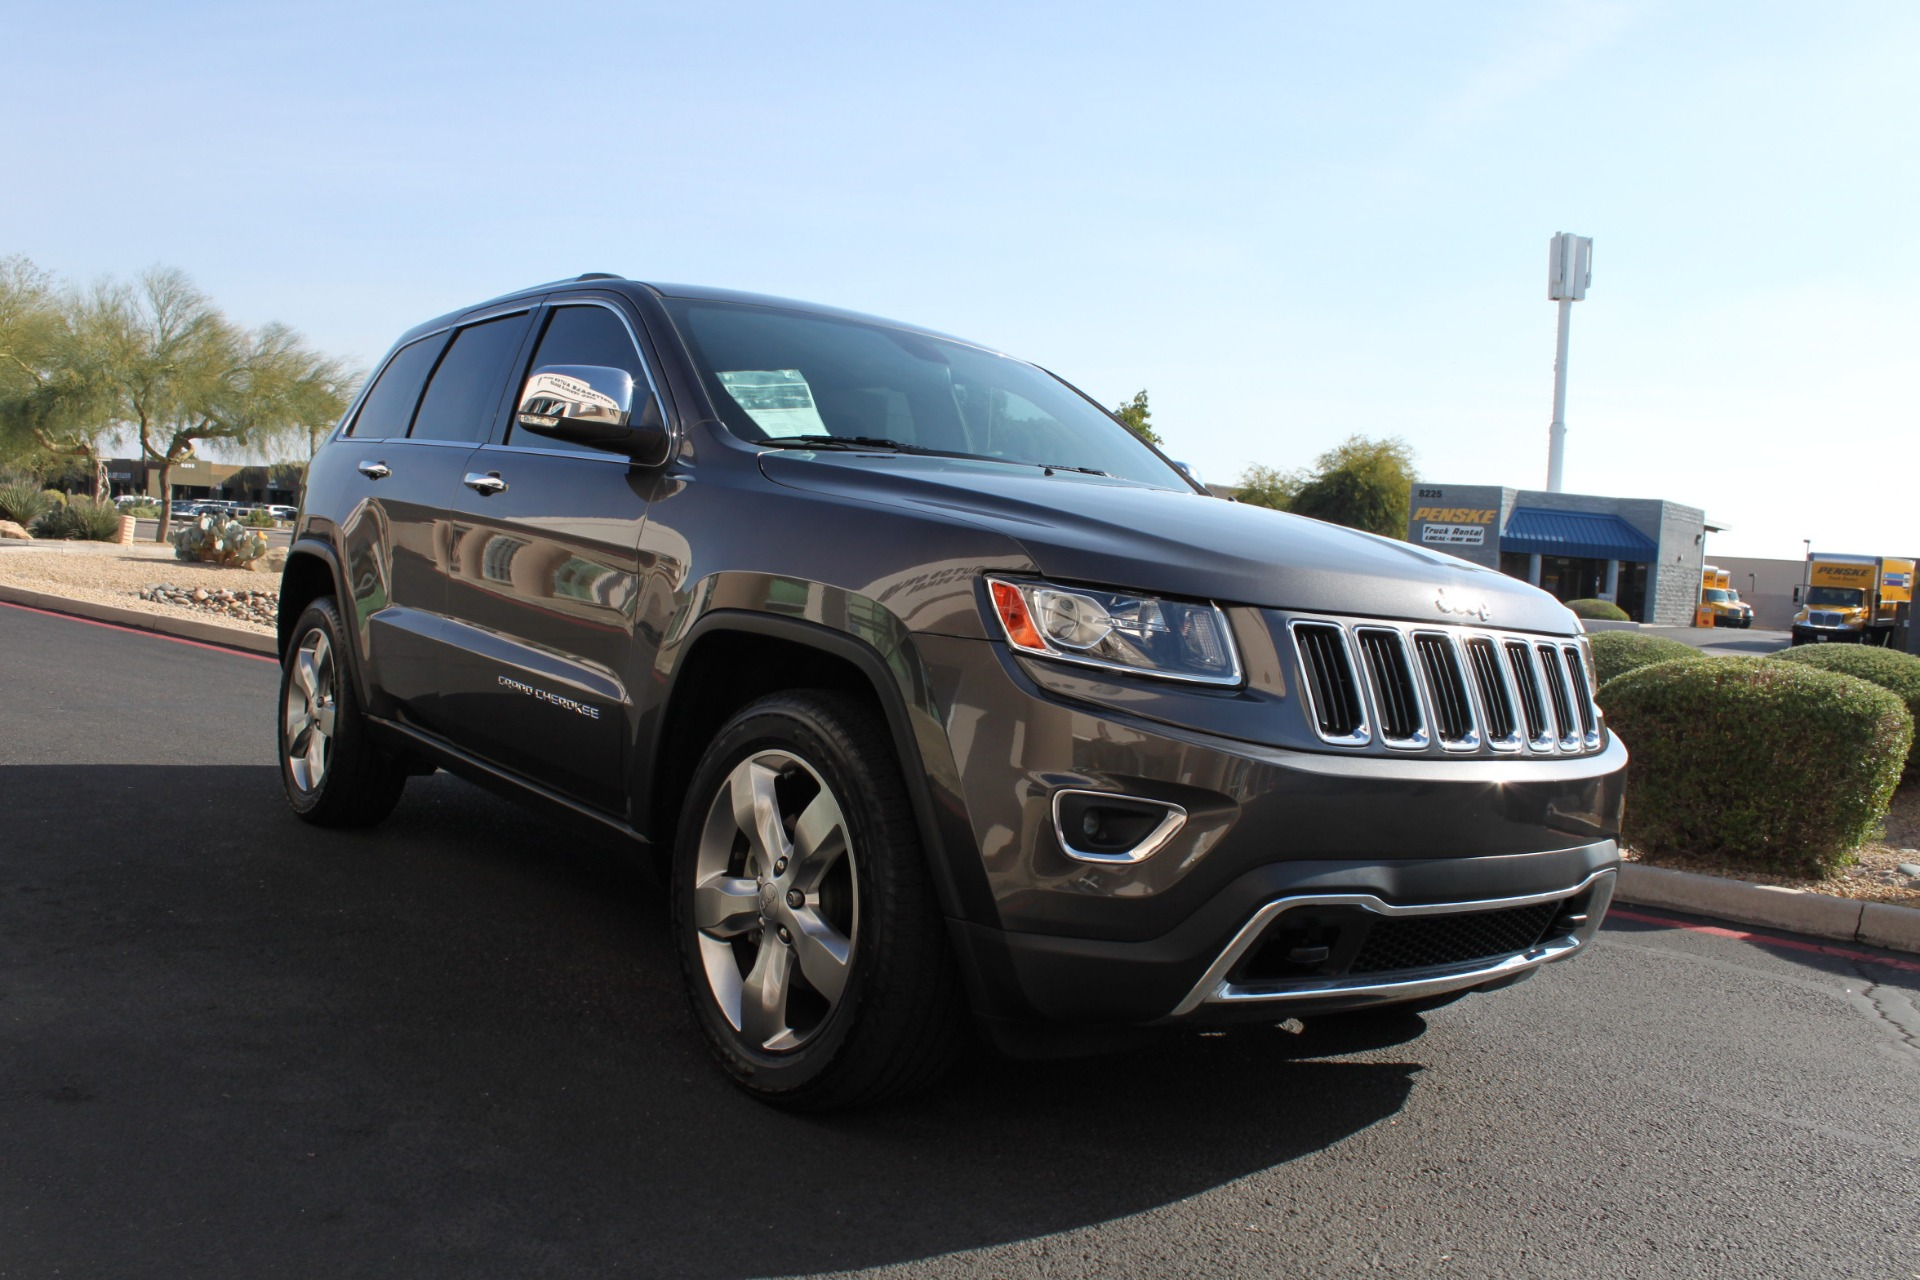 Used-2014-Jeep-Grand-Cherokee-Limited-4X4-Chevelle